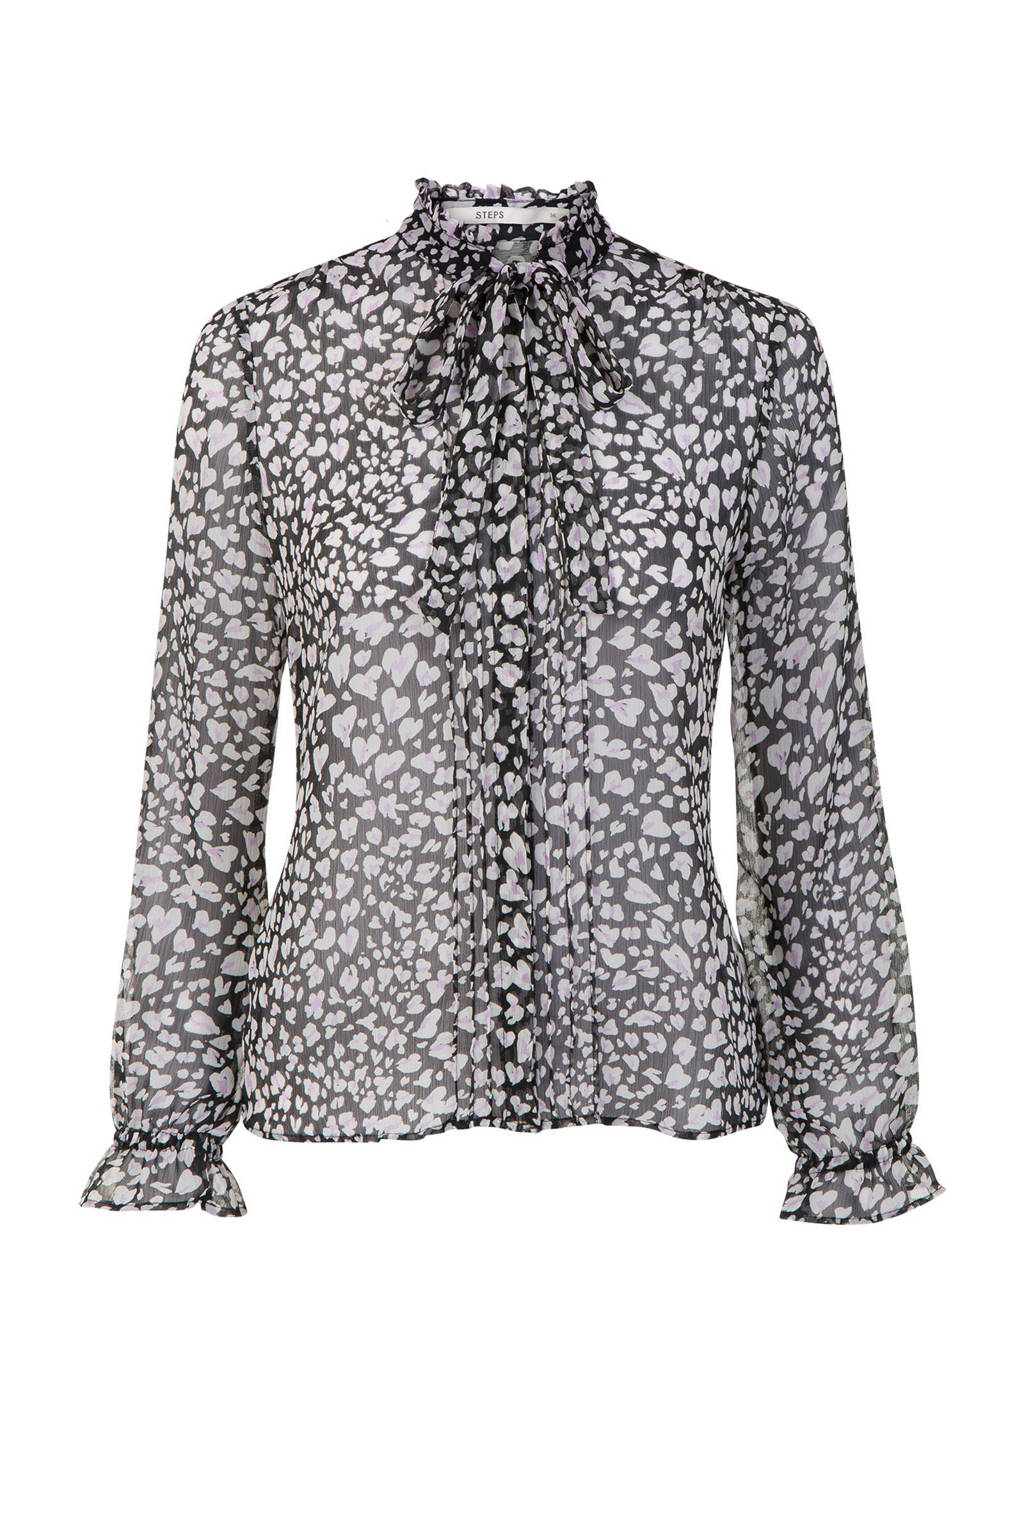 Steps chiffon blouse met all-over print, Zwart